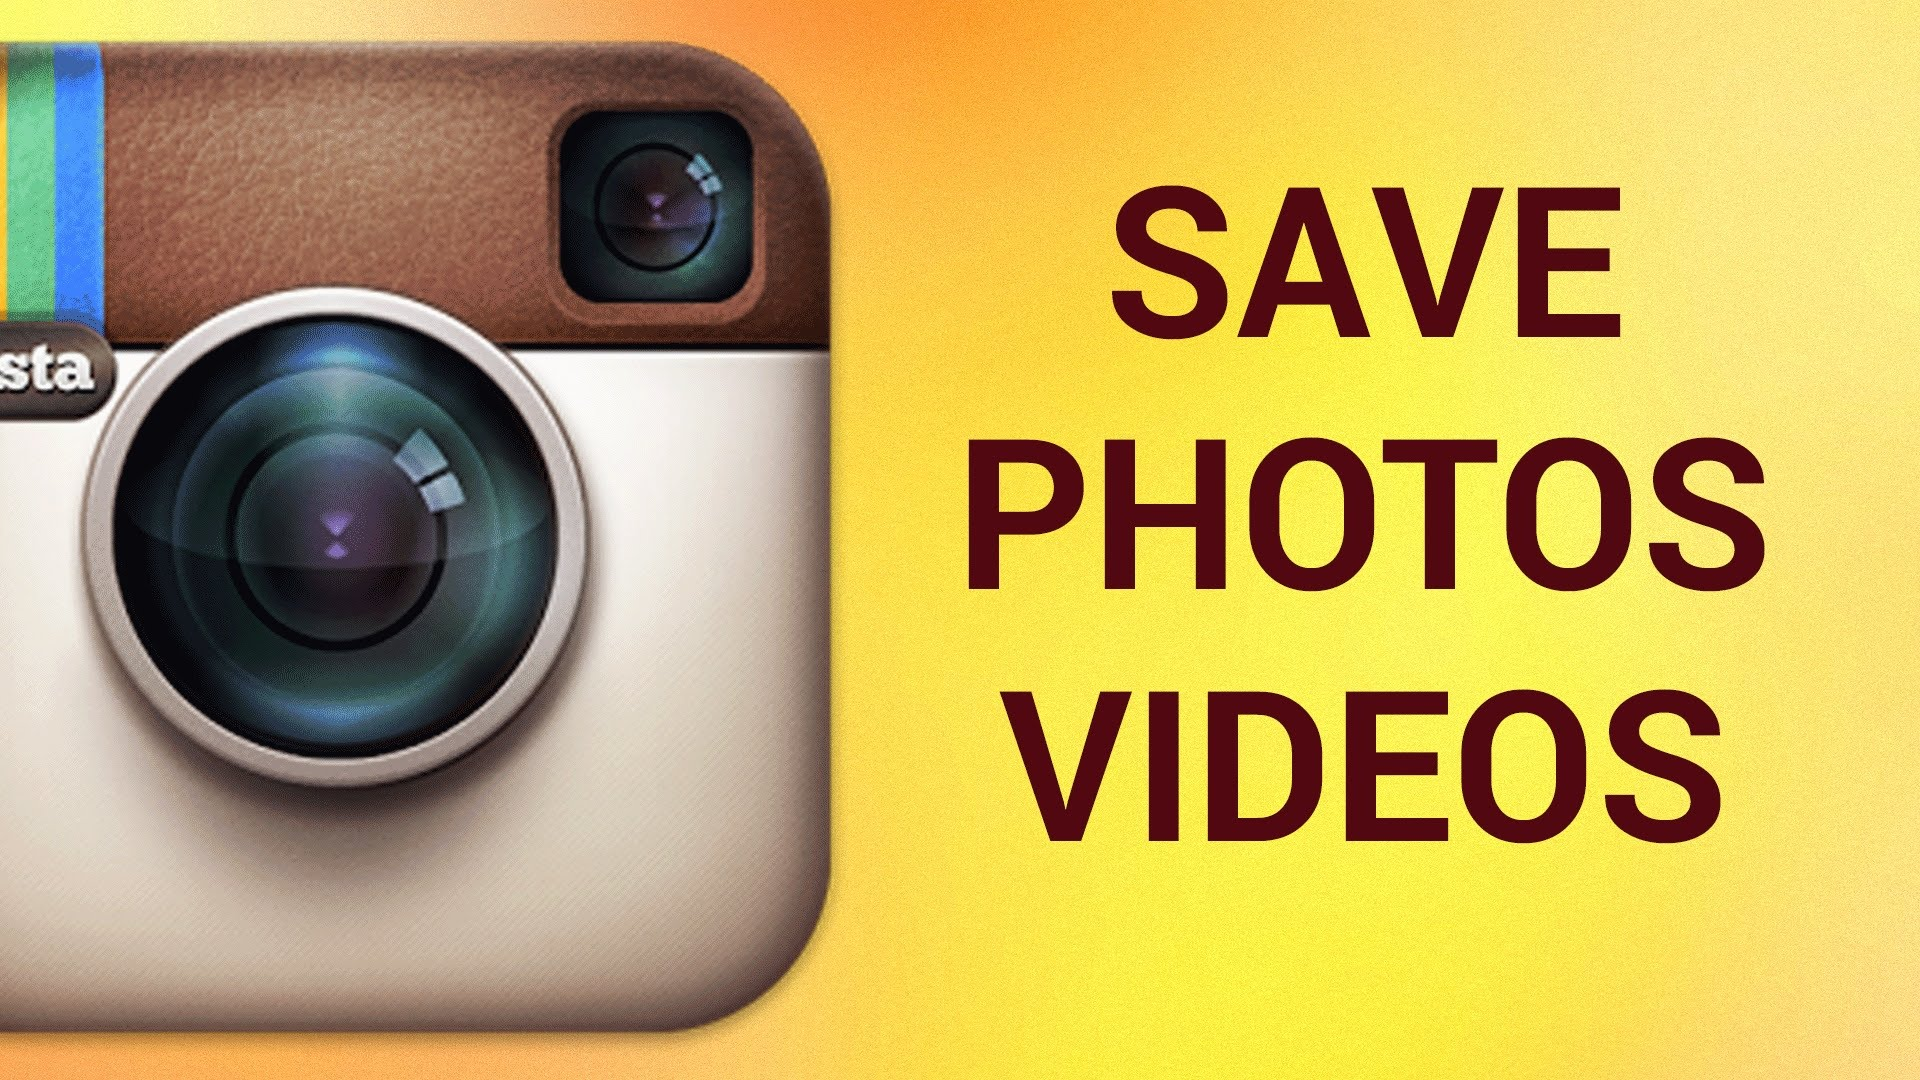 To photo instagram save how an